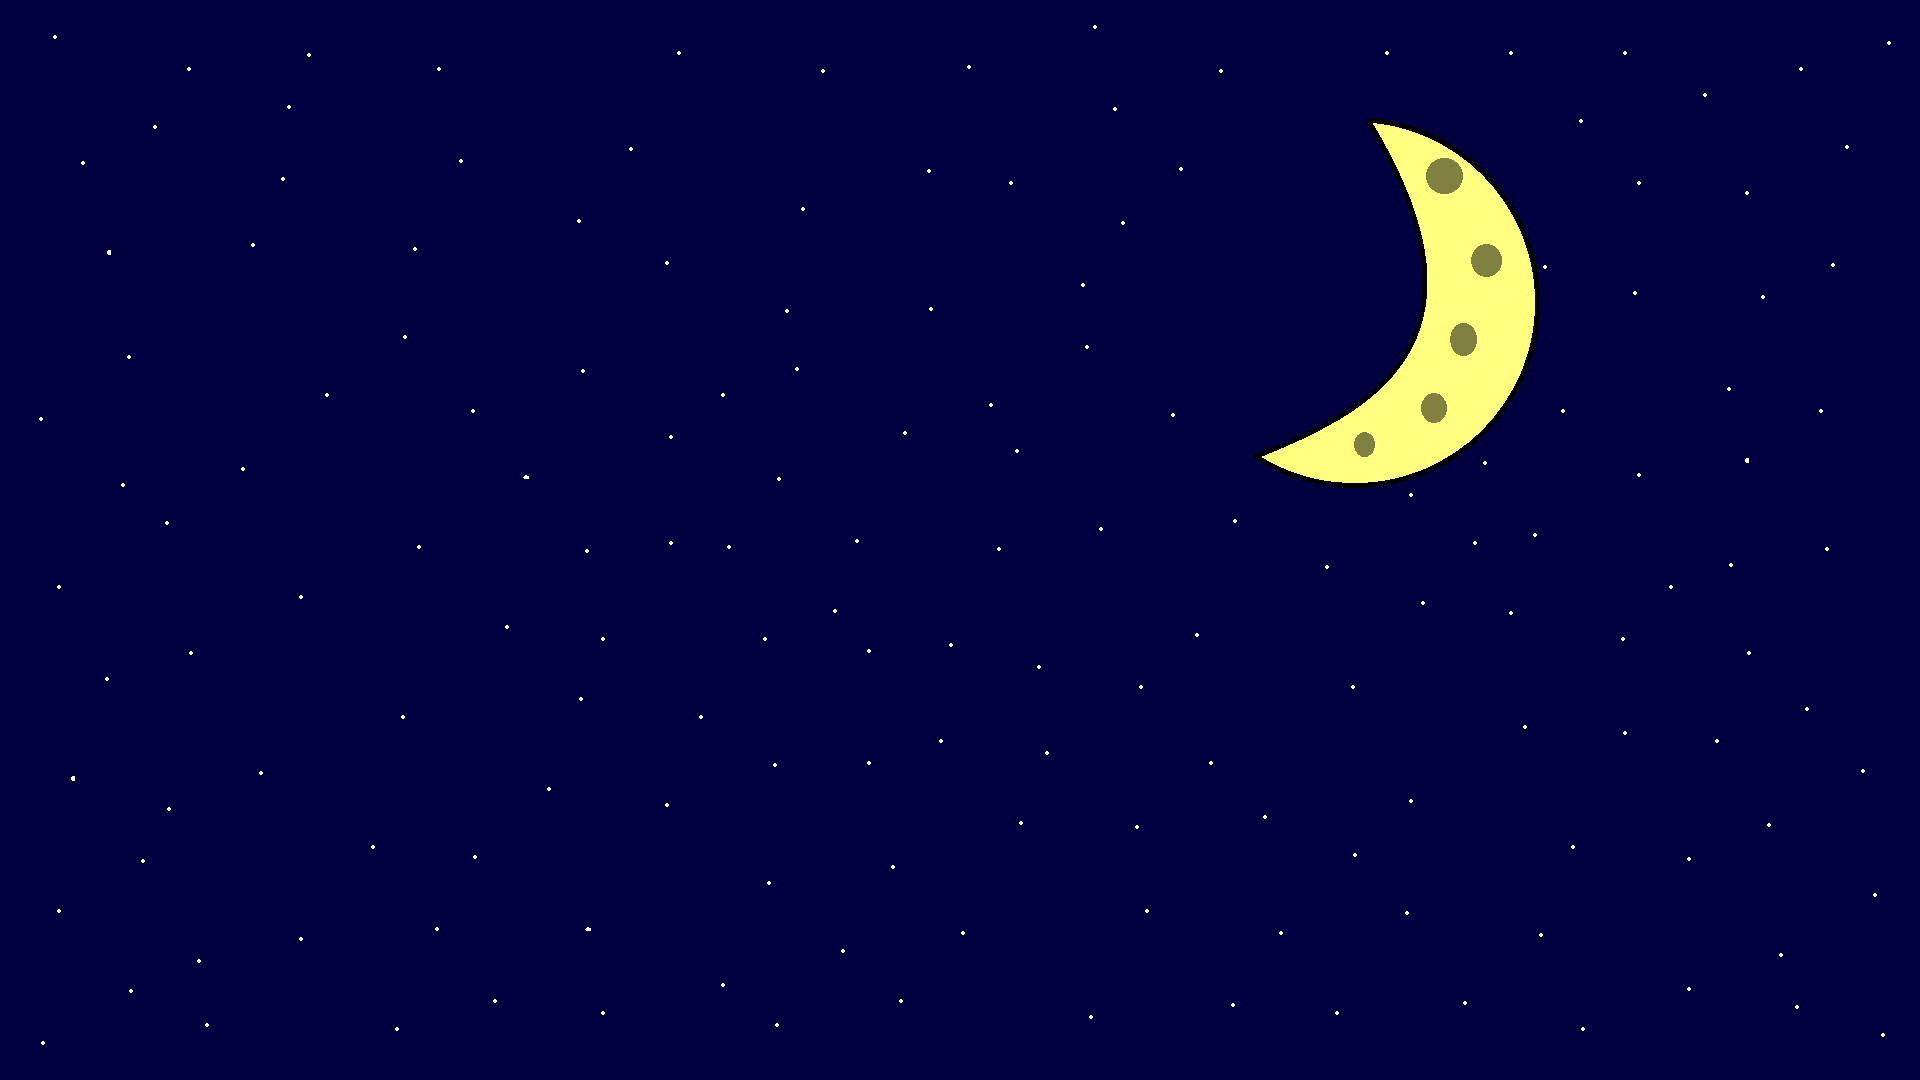 1920x1080 Starry night background.png